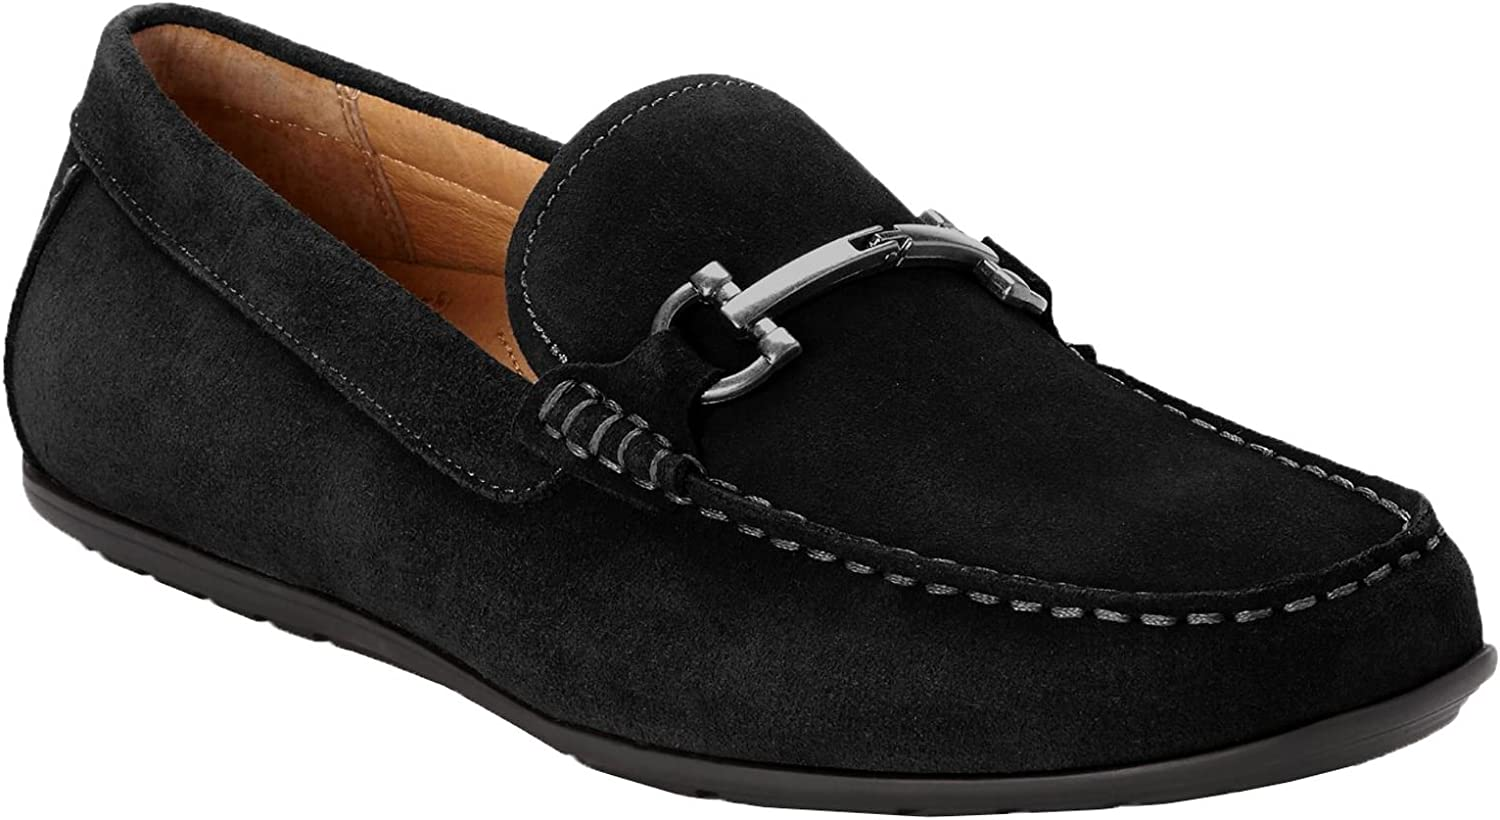 Vionic Men s Mercer Mason Driving Moccasins   Suede Loafer for Men with Concealed Orthotic Support  Black 8M